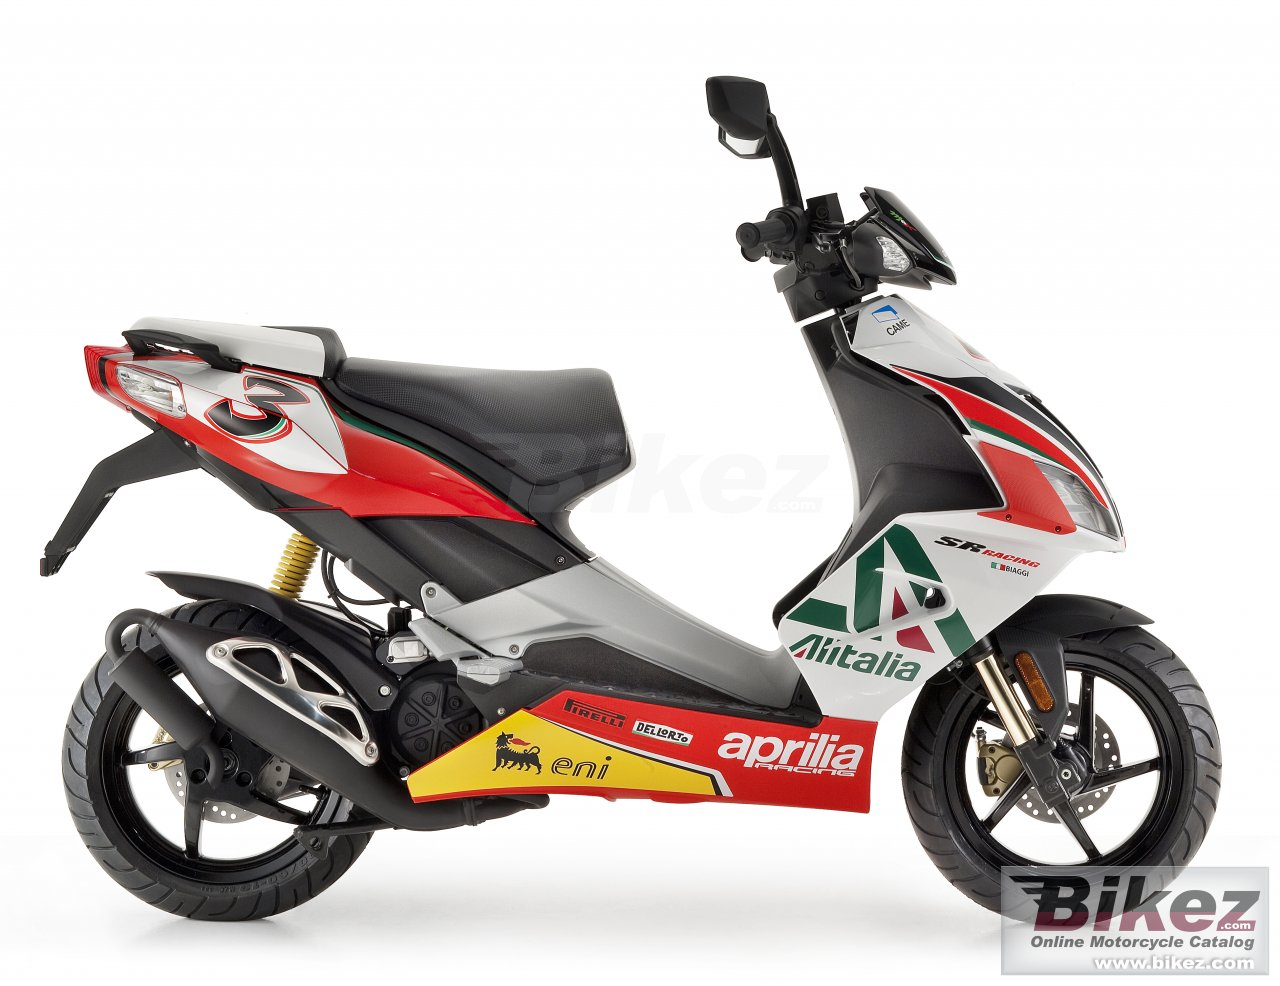 Big Aprilia sr 50 r replica sbk picture and wallpaper from Bikez.com